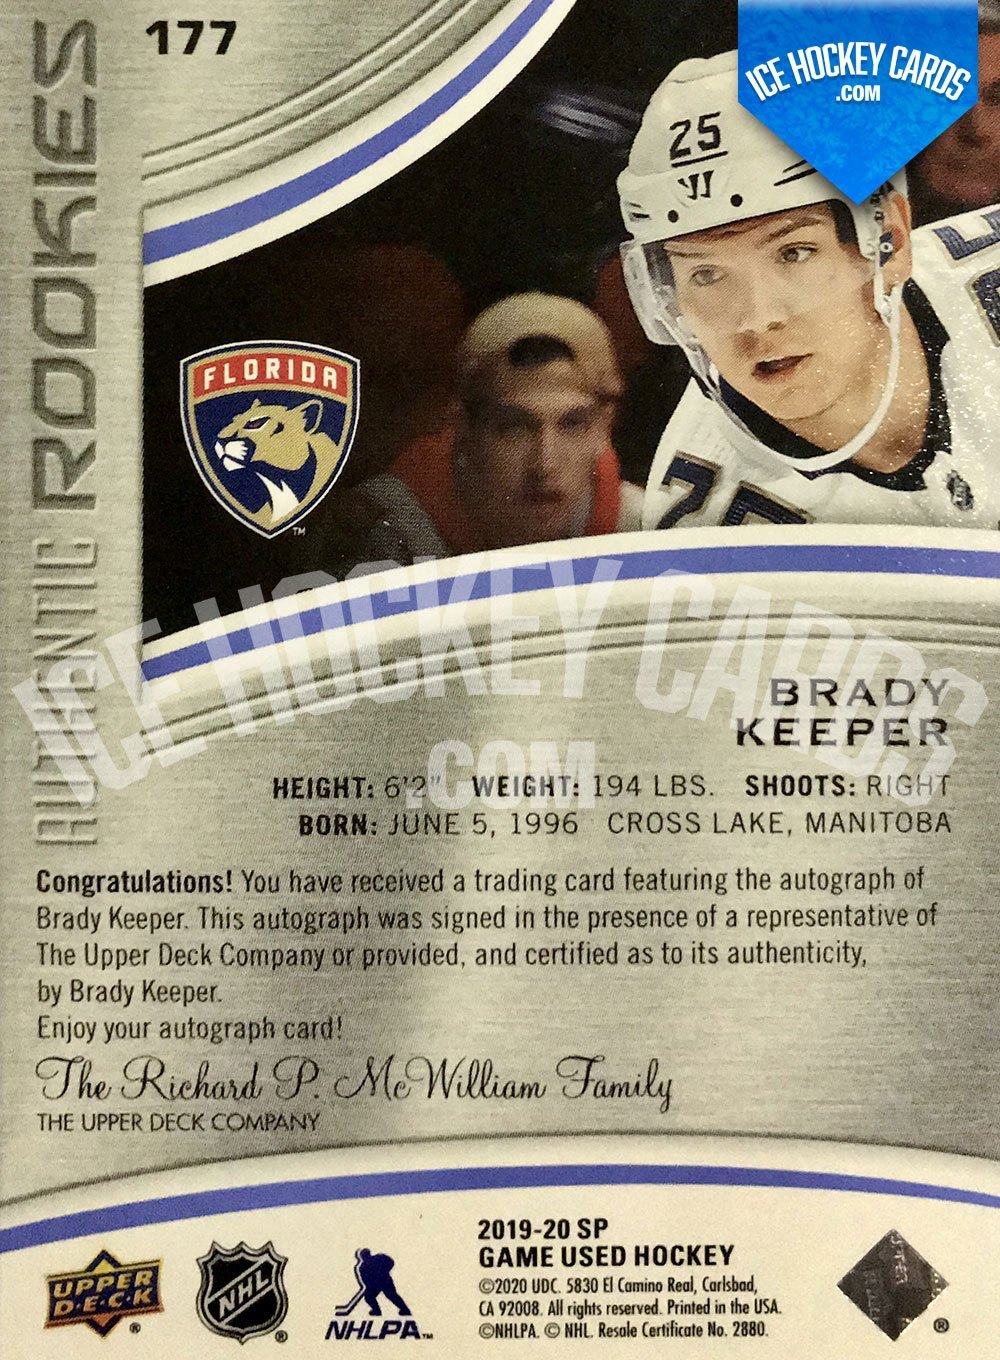 Upper Deck - SP Game Used Hockey 2019-20 - Brady Keeper Authentic Rookies Auto RC back